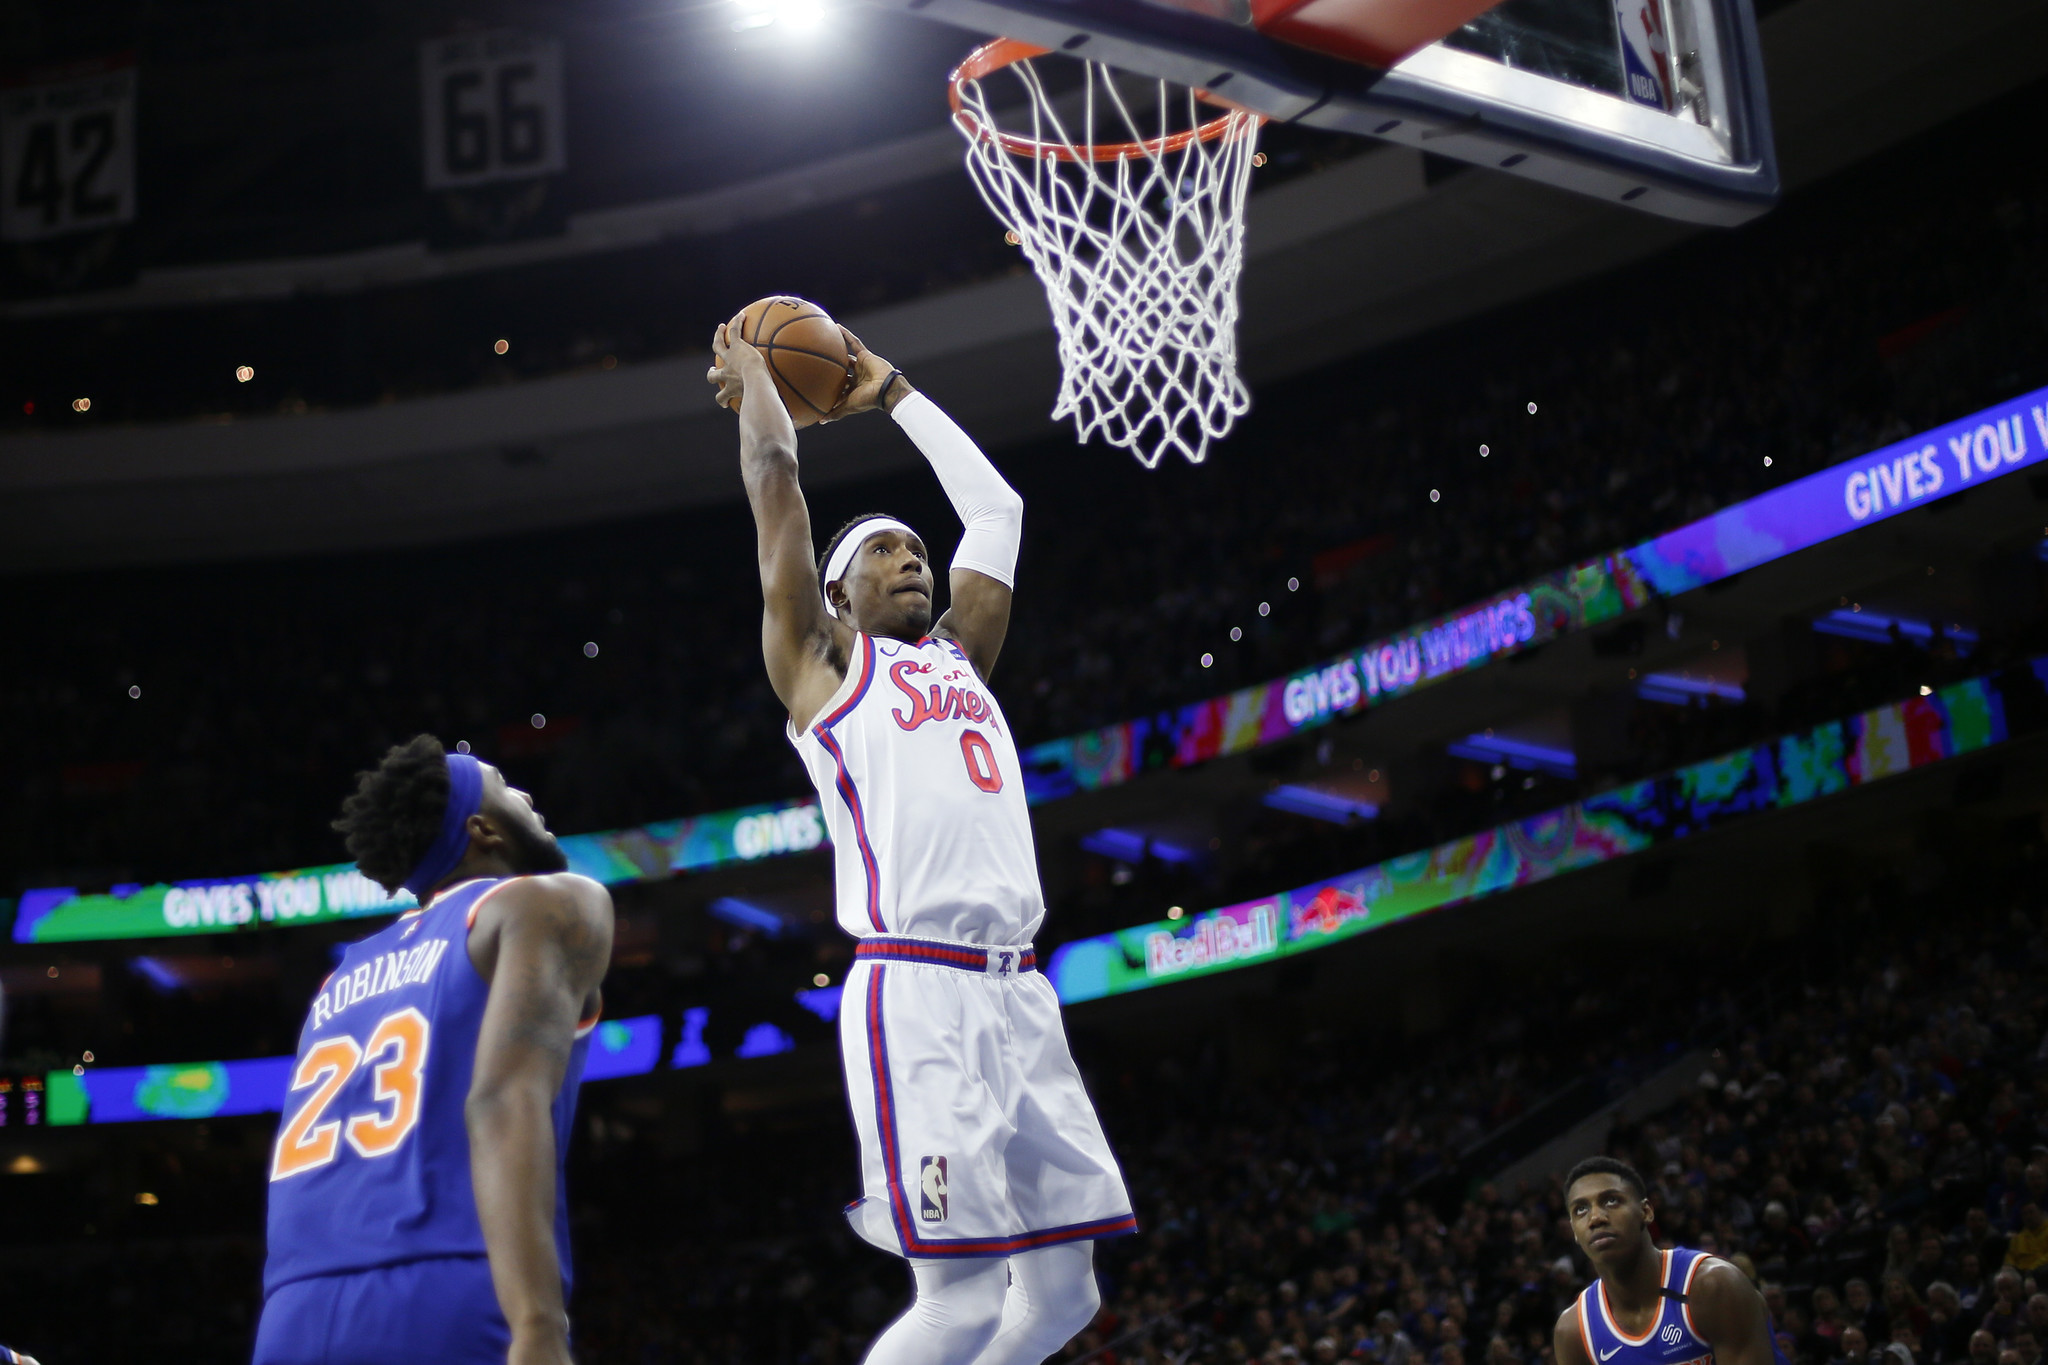 Knicks handed seventh straight losing season after loss to Sixers